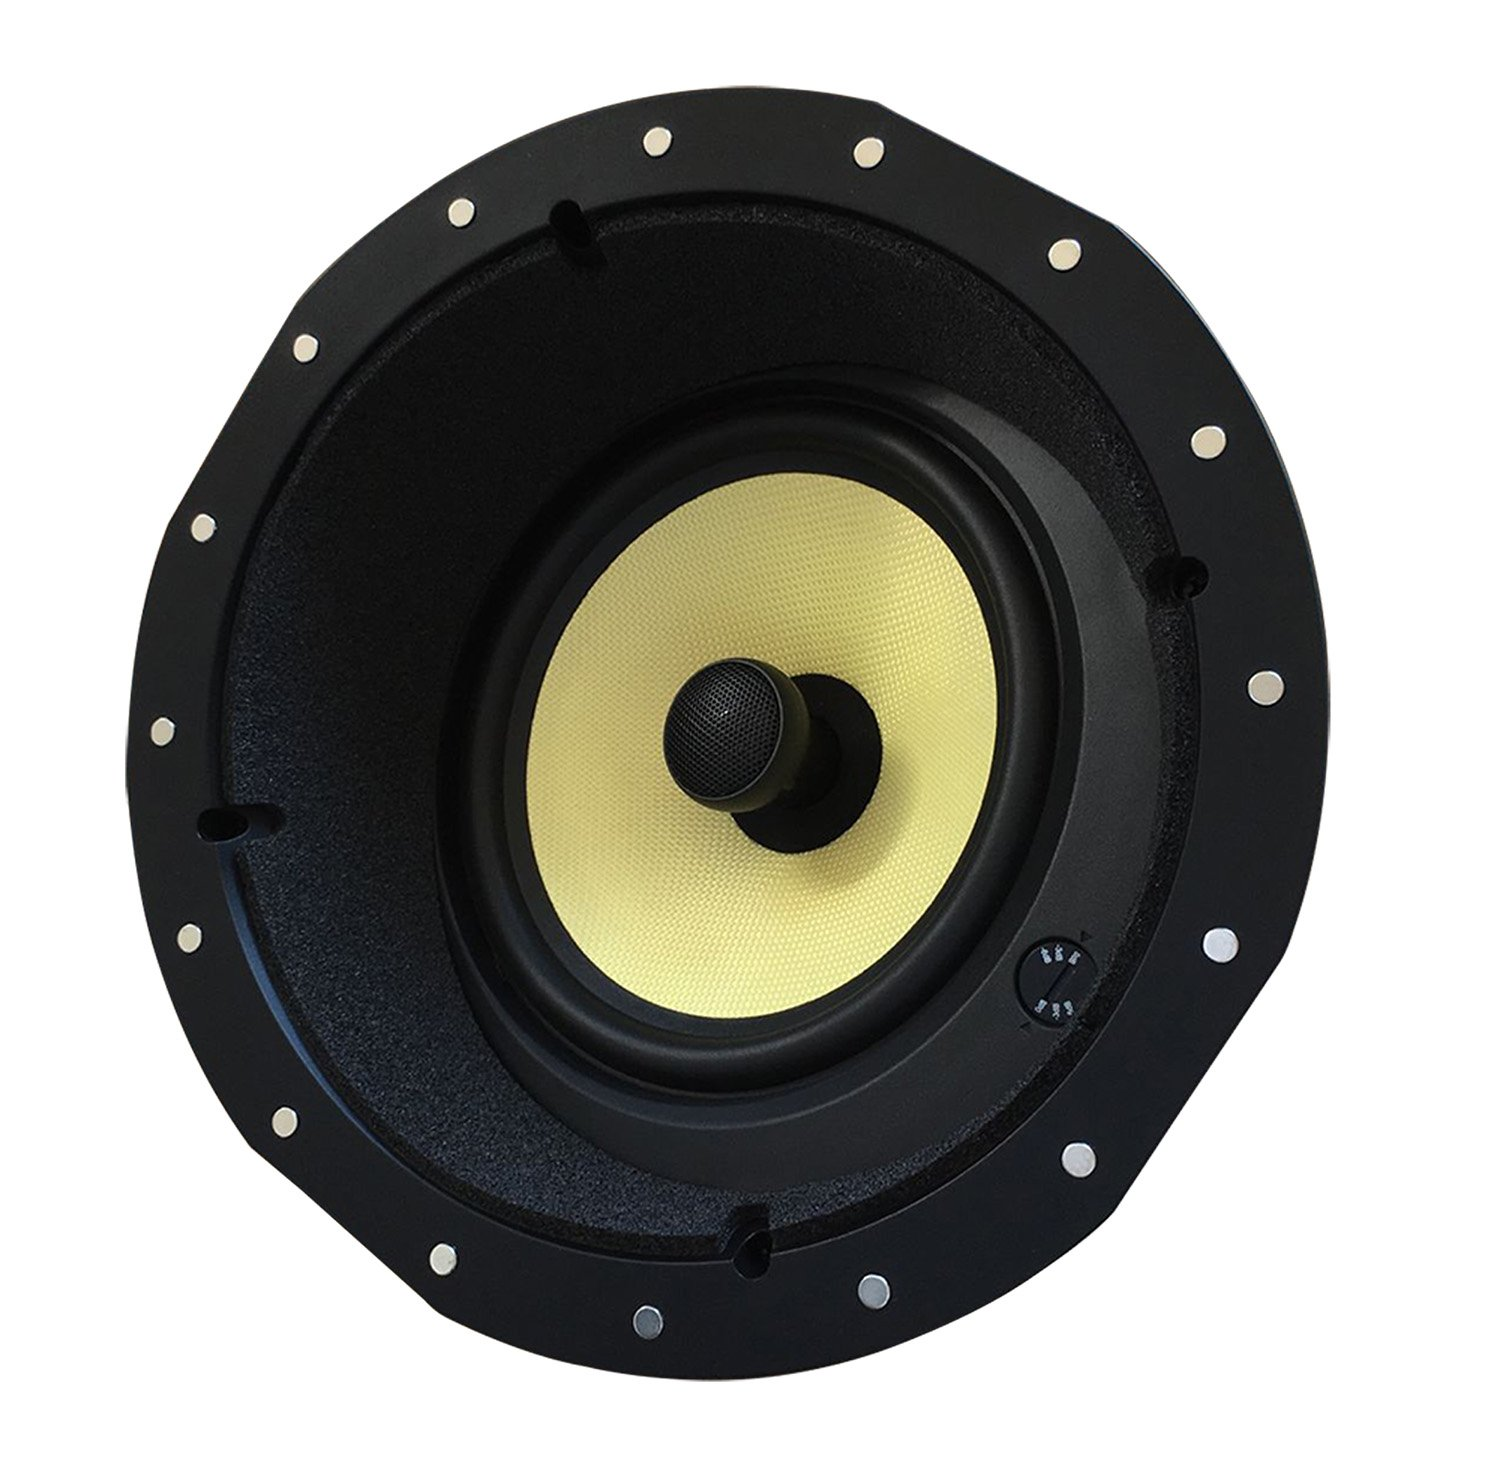 YK82AC Silver Ticket Products Angled In-Ceiling Speaker with Magnetic Grill and Pivoting Tweeter (8 Inch Angled in-ceiling)